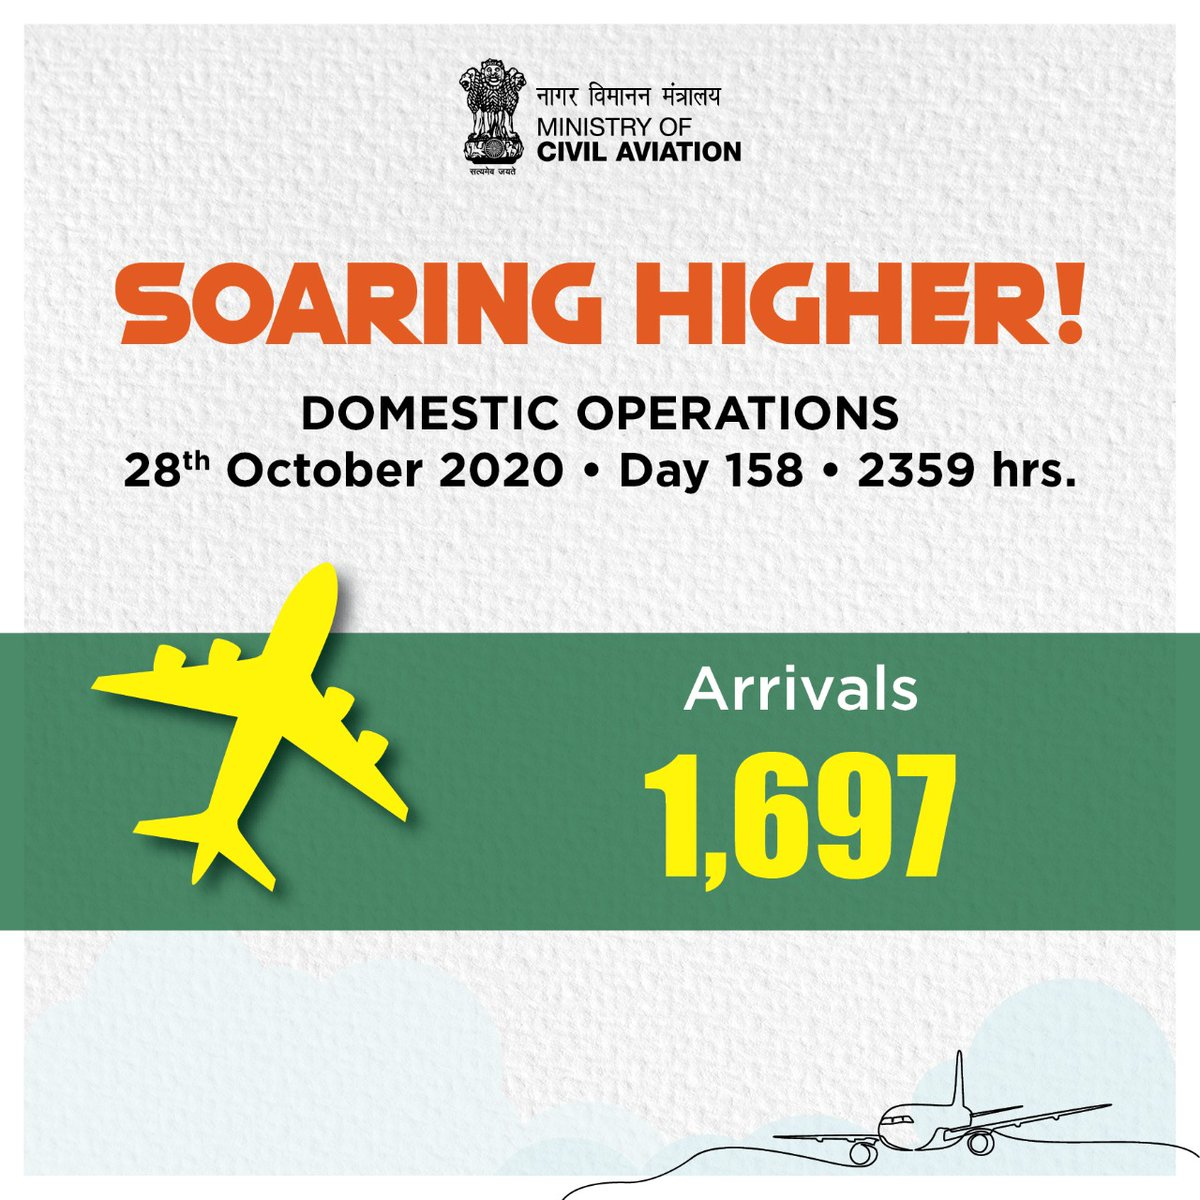 India soaring higher!  1697 flight arrivals took place across the country on 28th October. Aviation operations continue to soar! #SabUdenSabJuden #IndiaFliesHigh https://t.co/JLIiOuyKEA